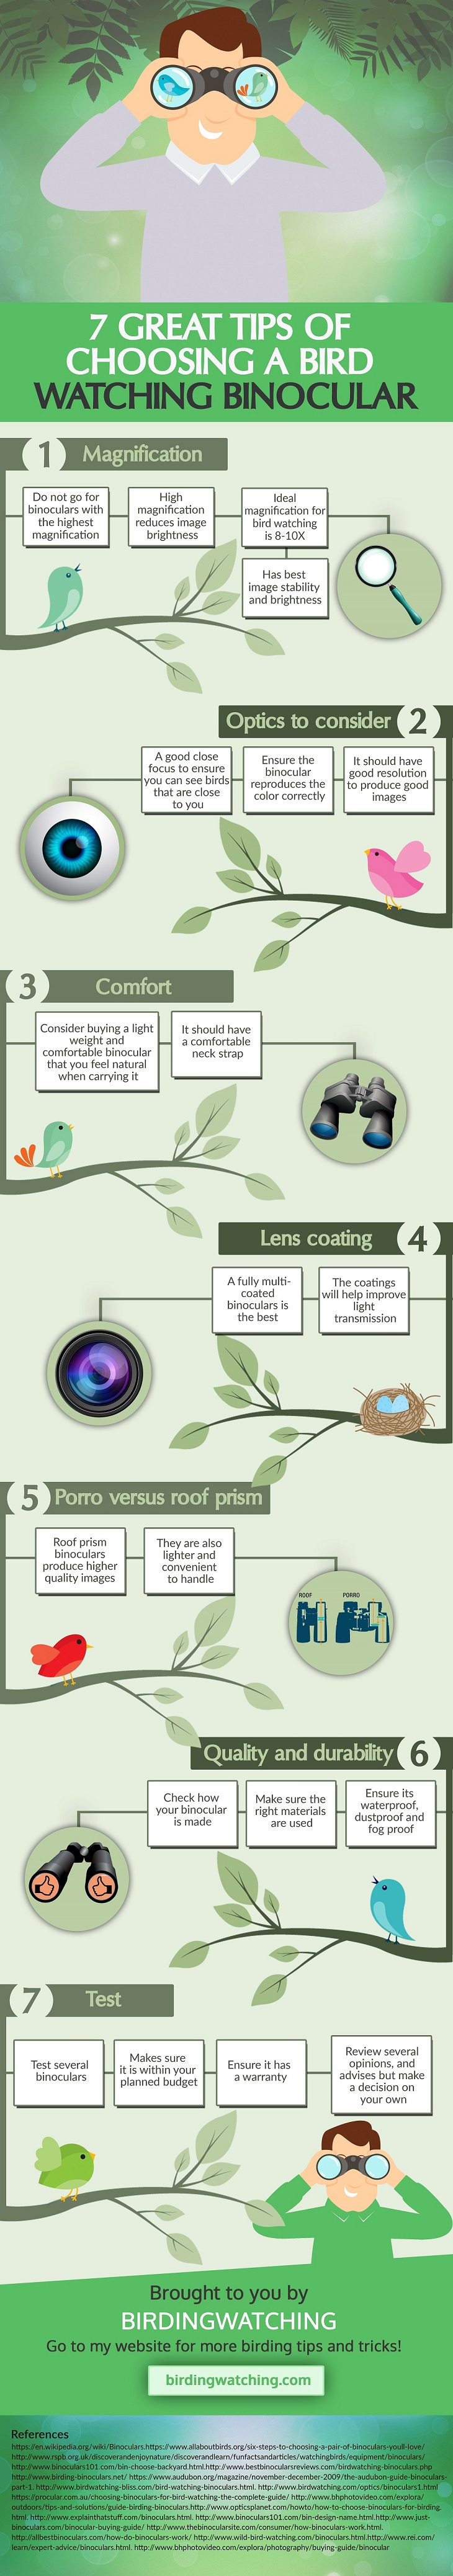 bird_watching_binoculars_infographic_large